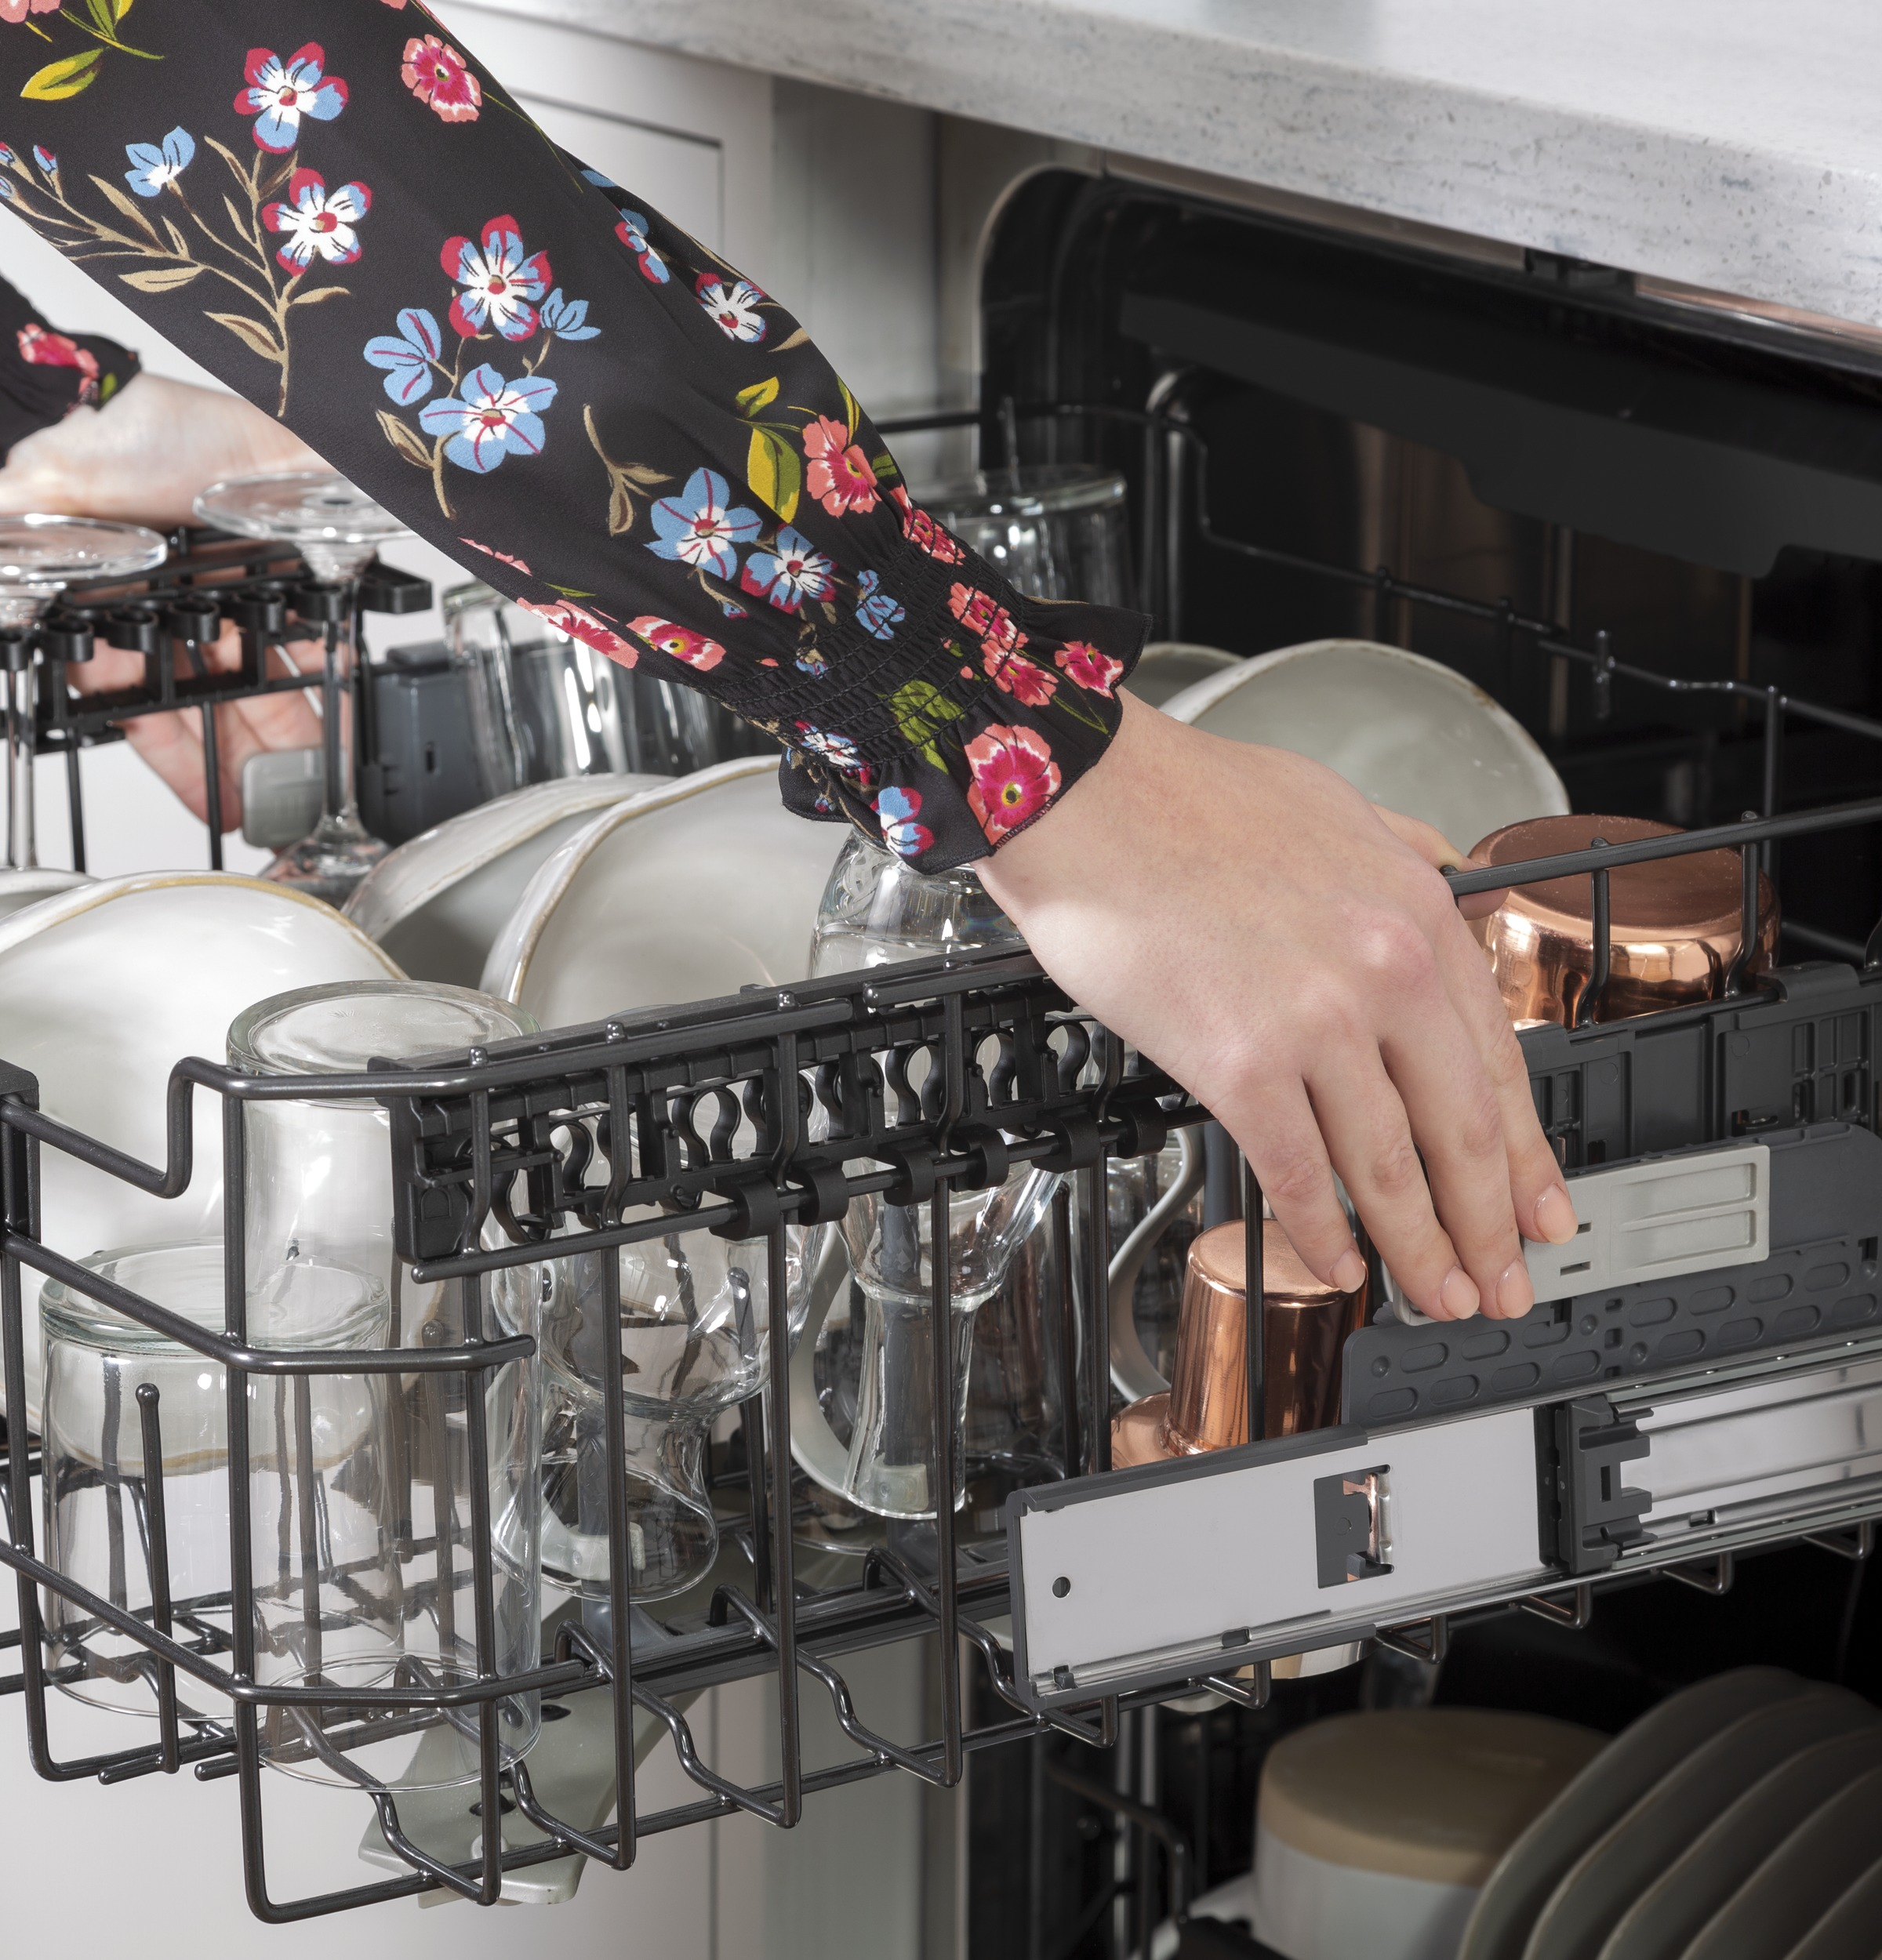 Model: CDT805P2NS1 | Cafe Café™ Stainless Steel Interior Dishwasher with Sanitize and Ultra Wash & Dry